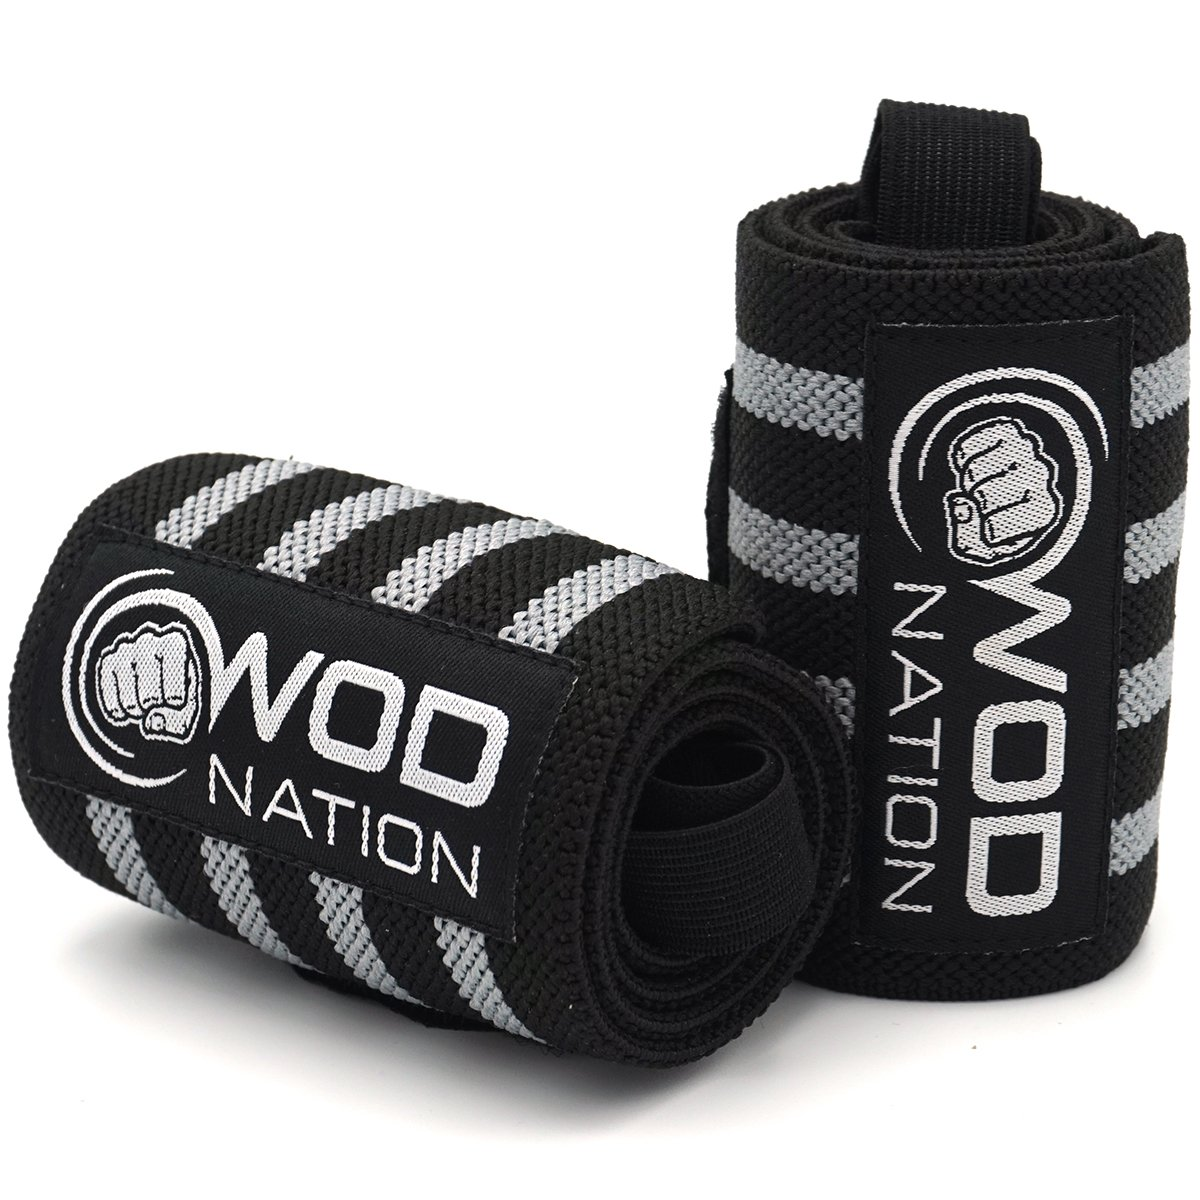 WOD Nation Wrist Wraps by Wrist Support Straps (12'', 18'' or 24'') - Fits Both Men & Women - Strength Training, Weightlifting, Powerlifting - Lift Heavier Weight (18 Inch - Black/Grey) by WOD Nation (Image #3)